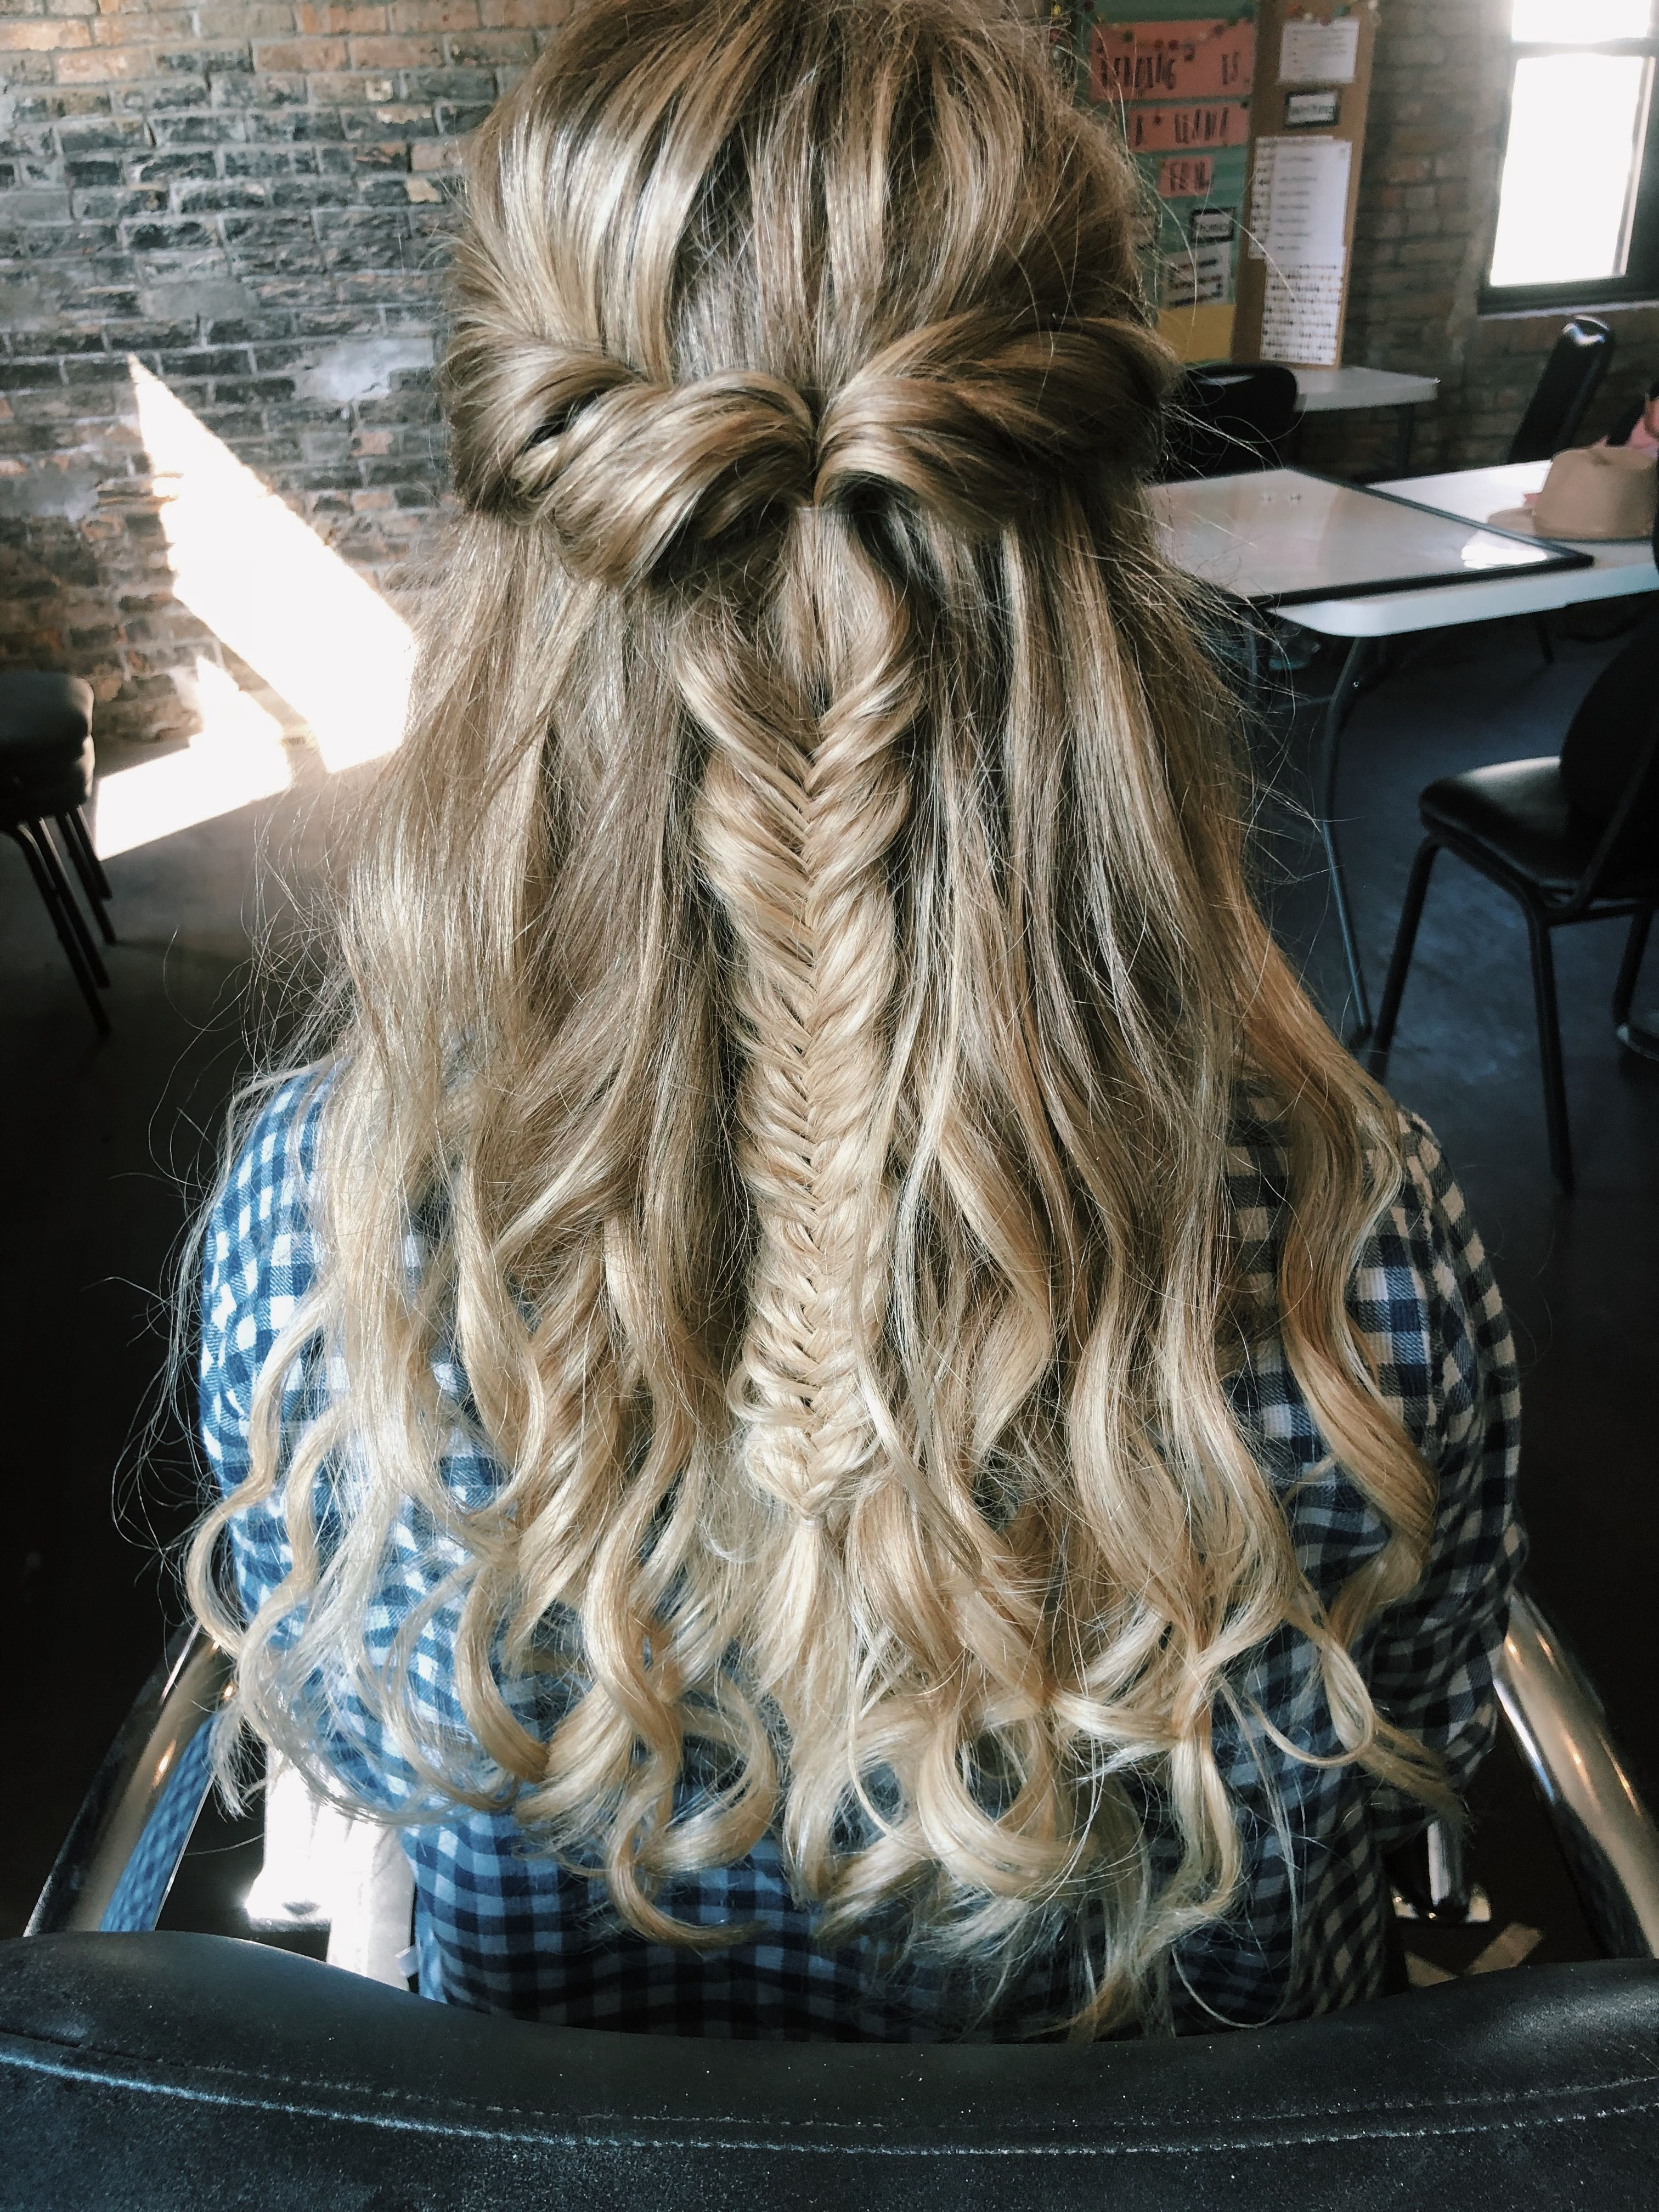 Half Up Half Down Fishtail Braid For Long Curly Hair Fish Tail Braid Curly Hair Styles Down Hairstyles